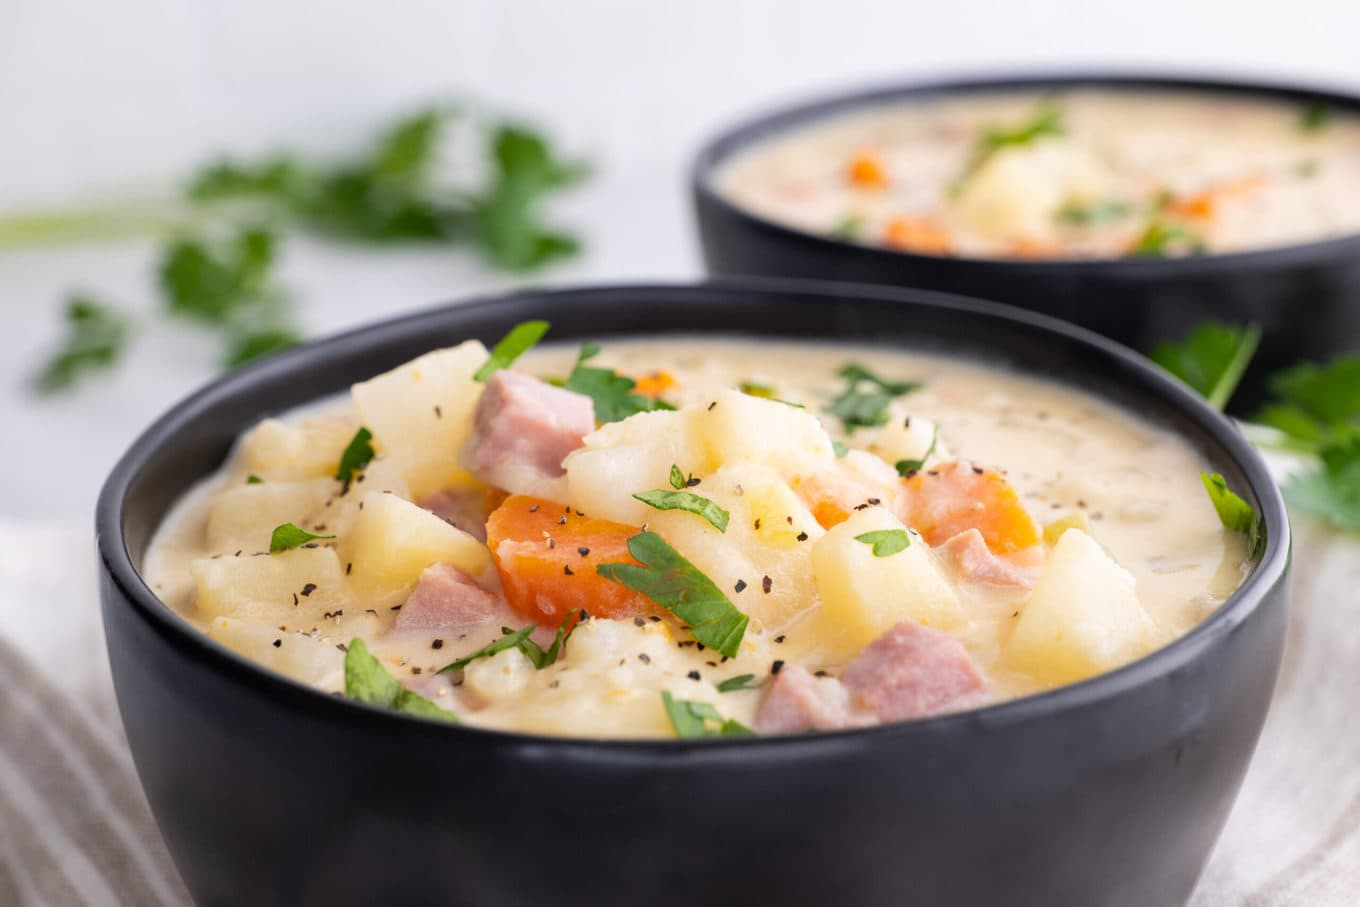 Slow Cooker Ham and Potato Soup in bowls with parsley garnish